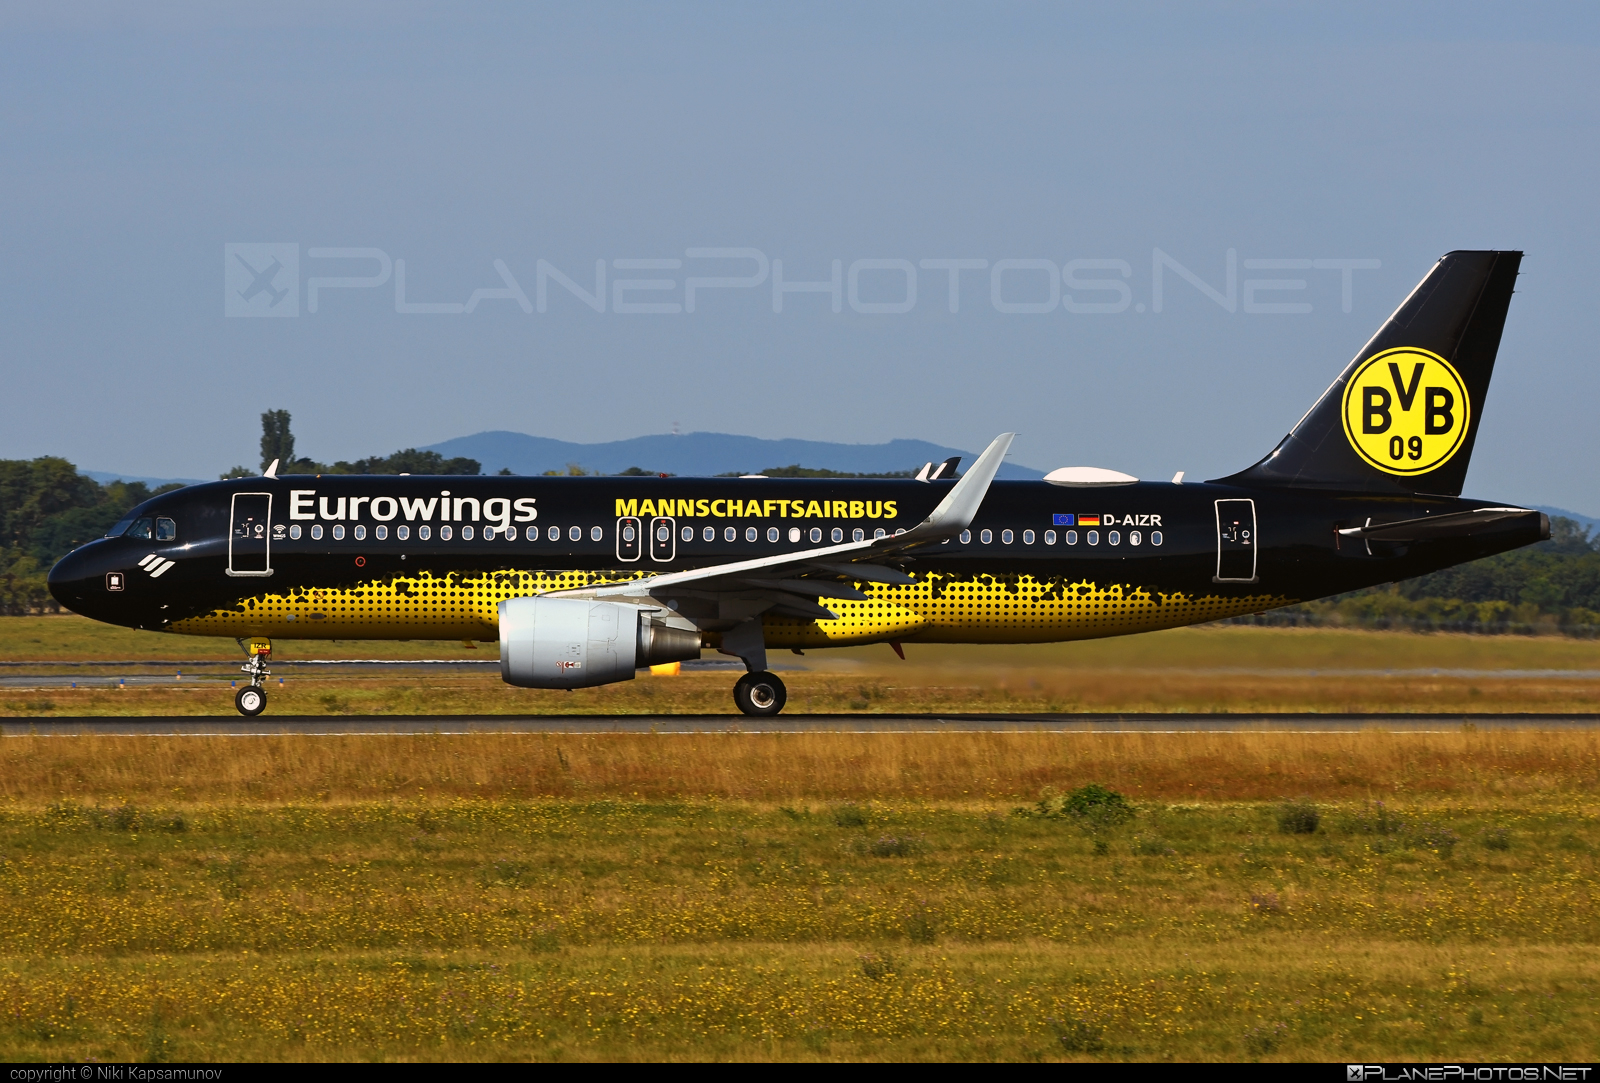 Airbus A320-214 - D-AIZR operated by Eurowings #a320 #a320family #airbus #airbus320 #eurowings